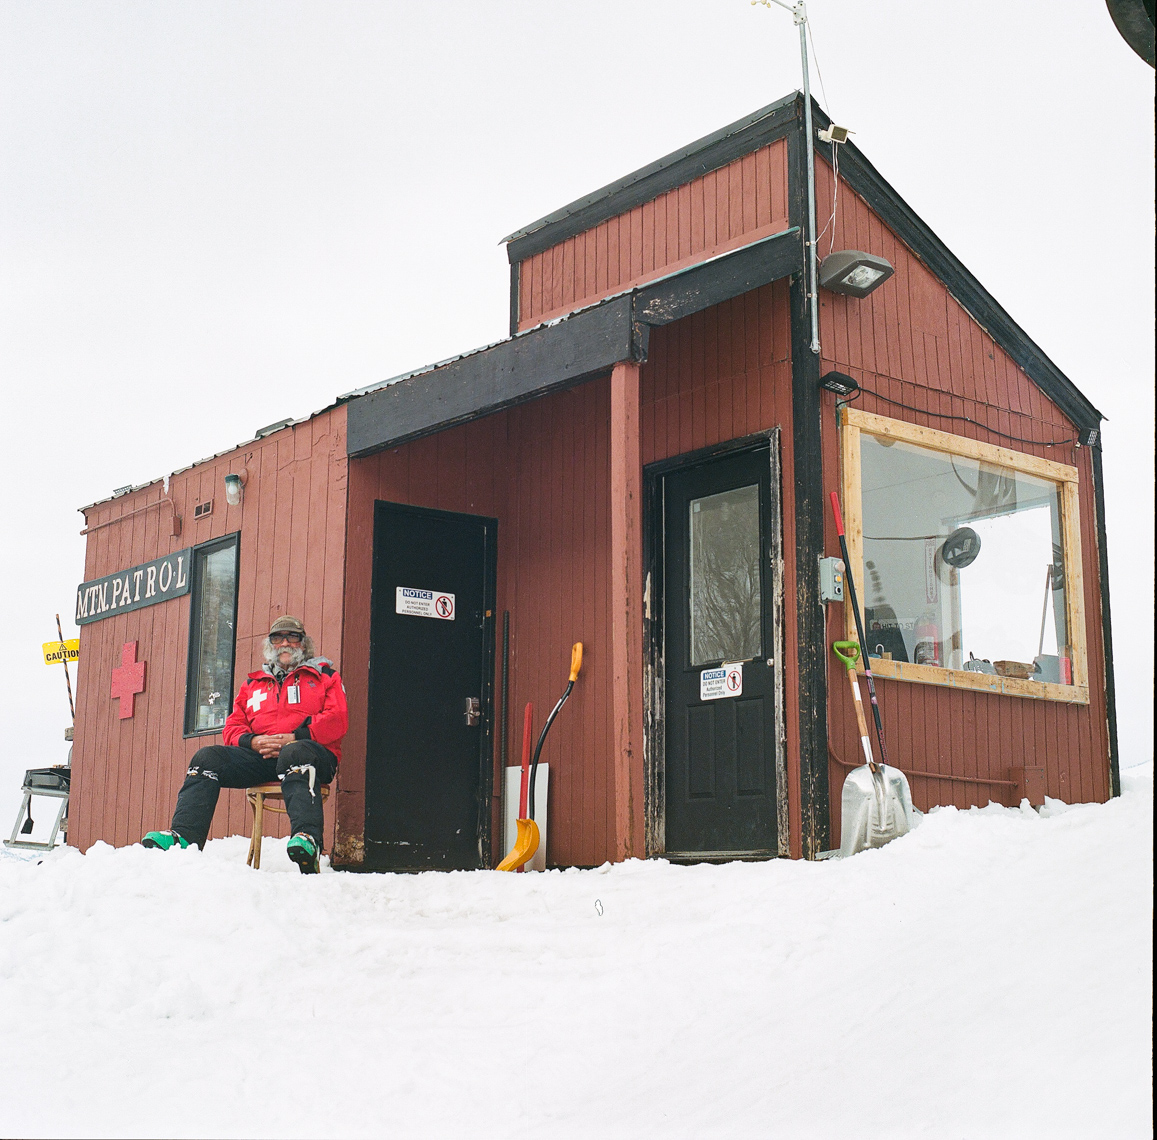 20200218_NordicValley_CamMcLeod_0001